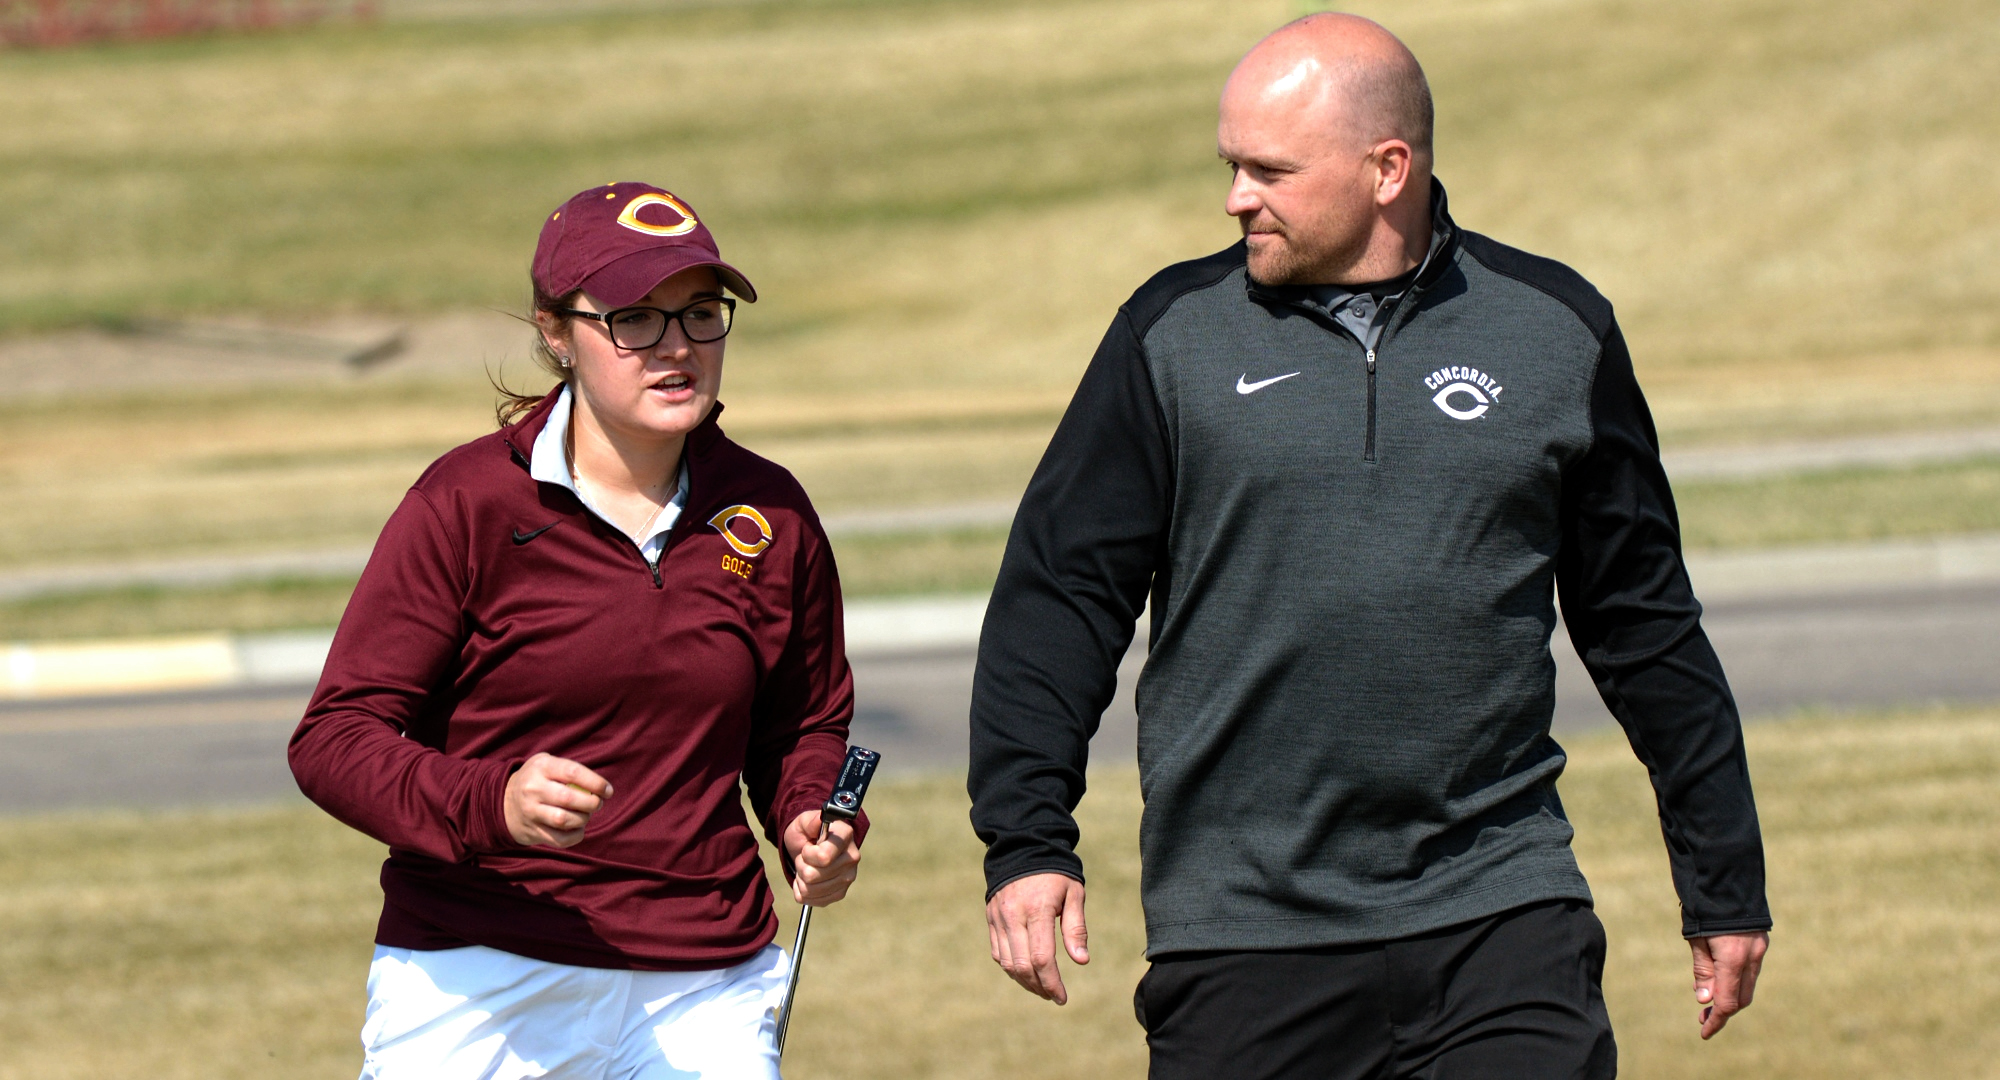 Freshman Katie Krueger talks with head coach Joe Christianson during the first round of the Cobber Open. Krueger placed fifth to earn the first Top 20 finish of her career.